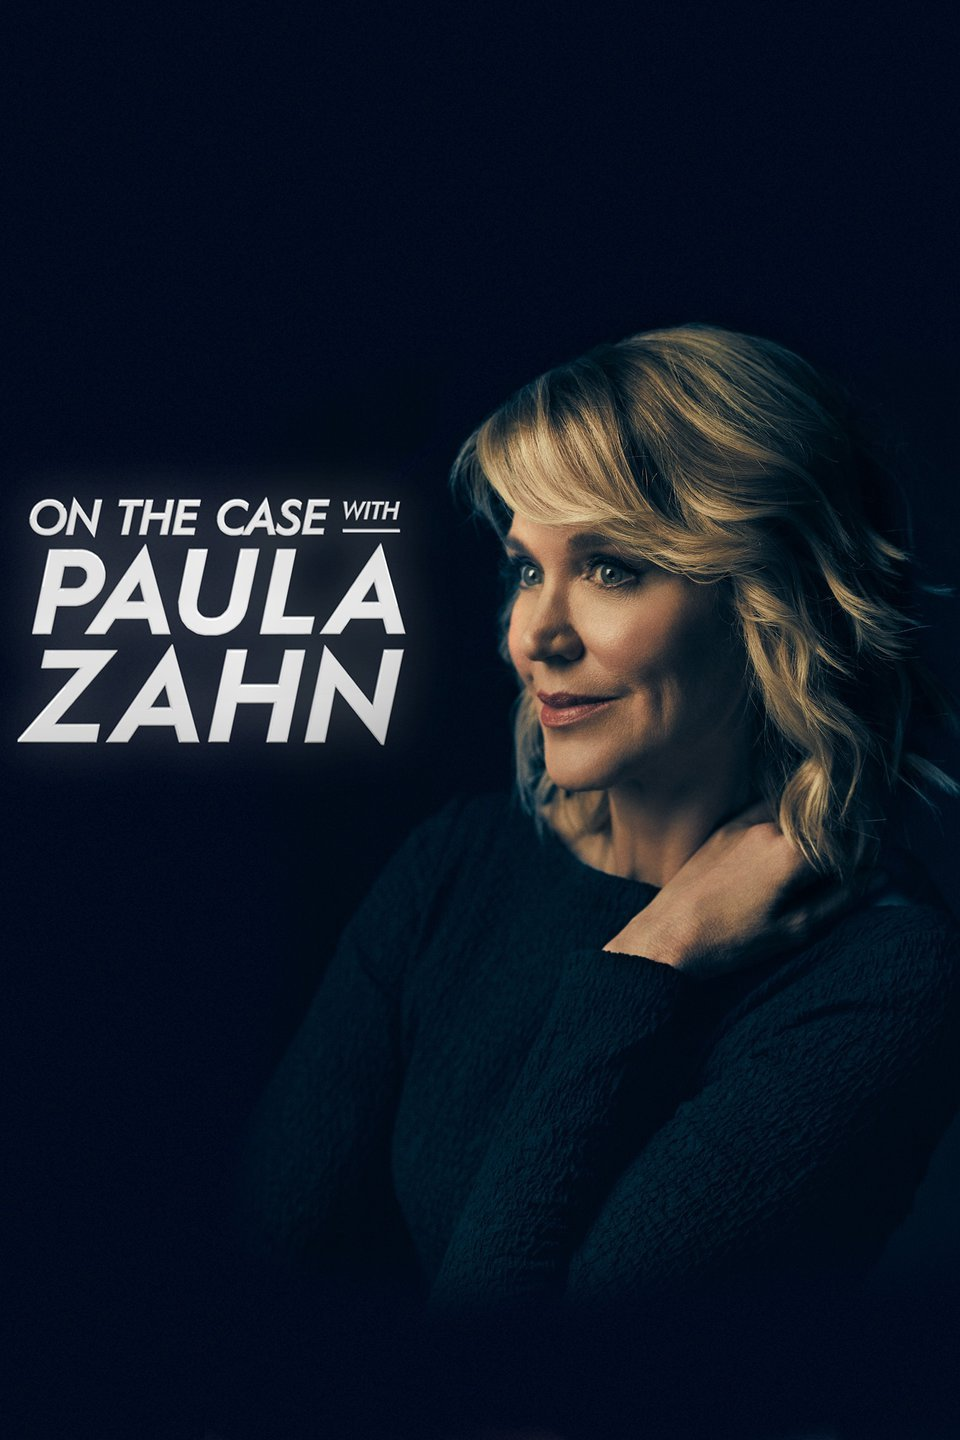 On The Case With Paula Zahn - Season 20 Episode 10 - A Predator in the Woods